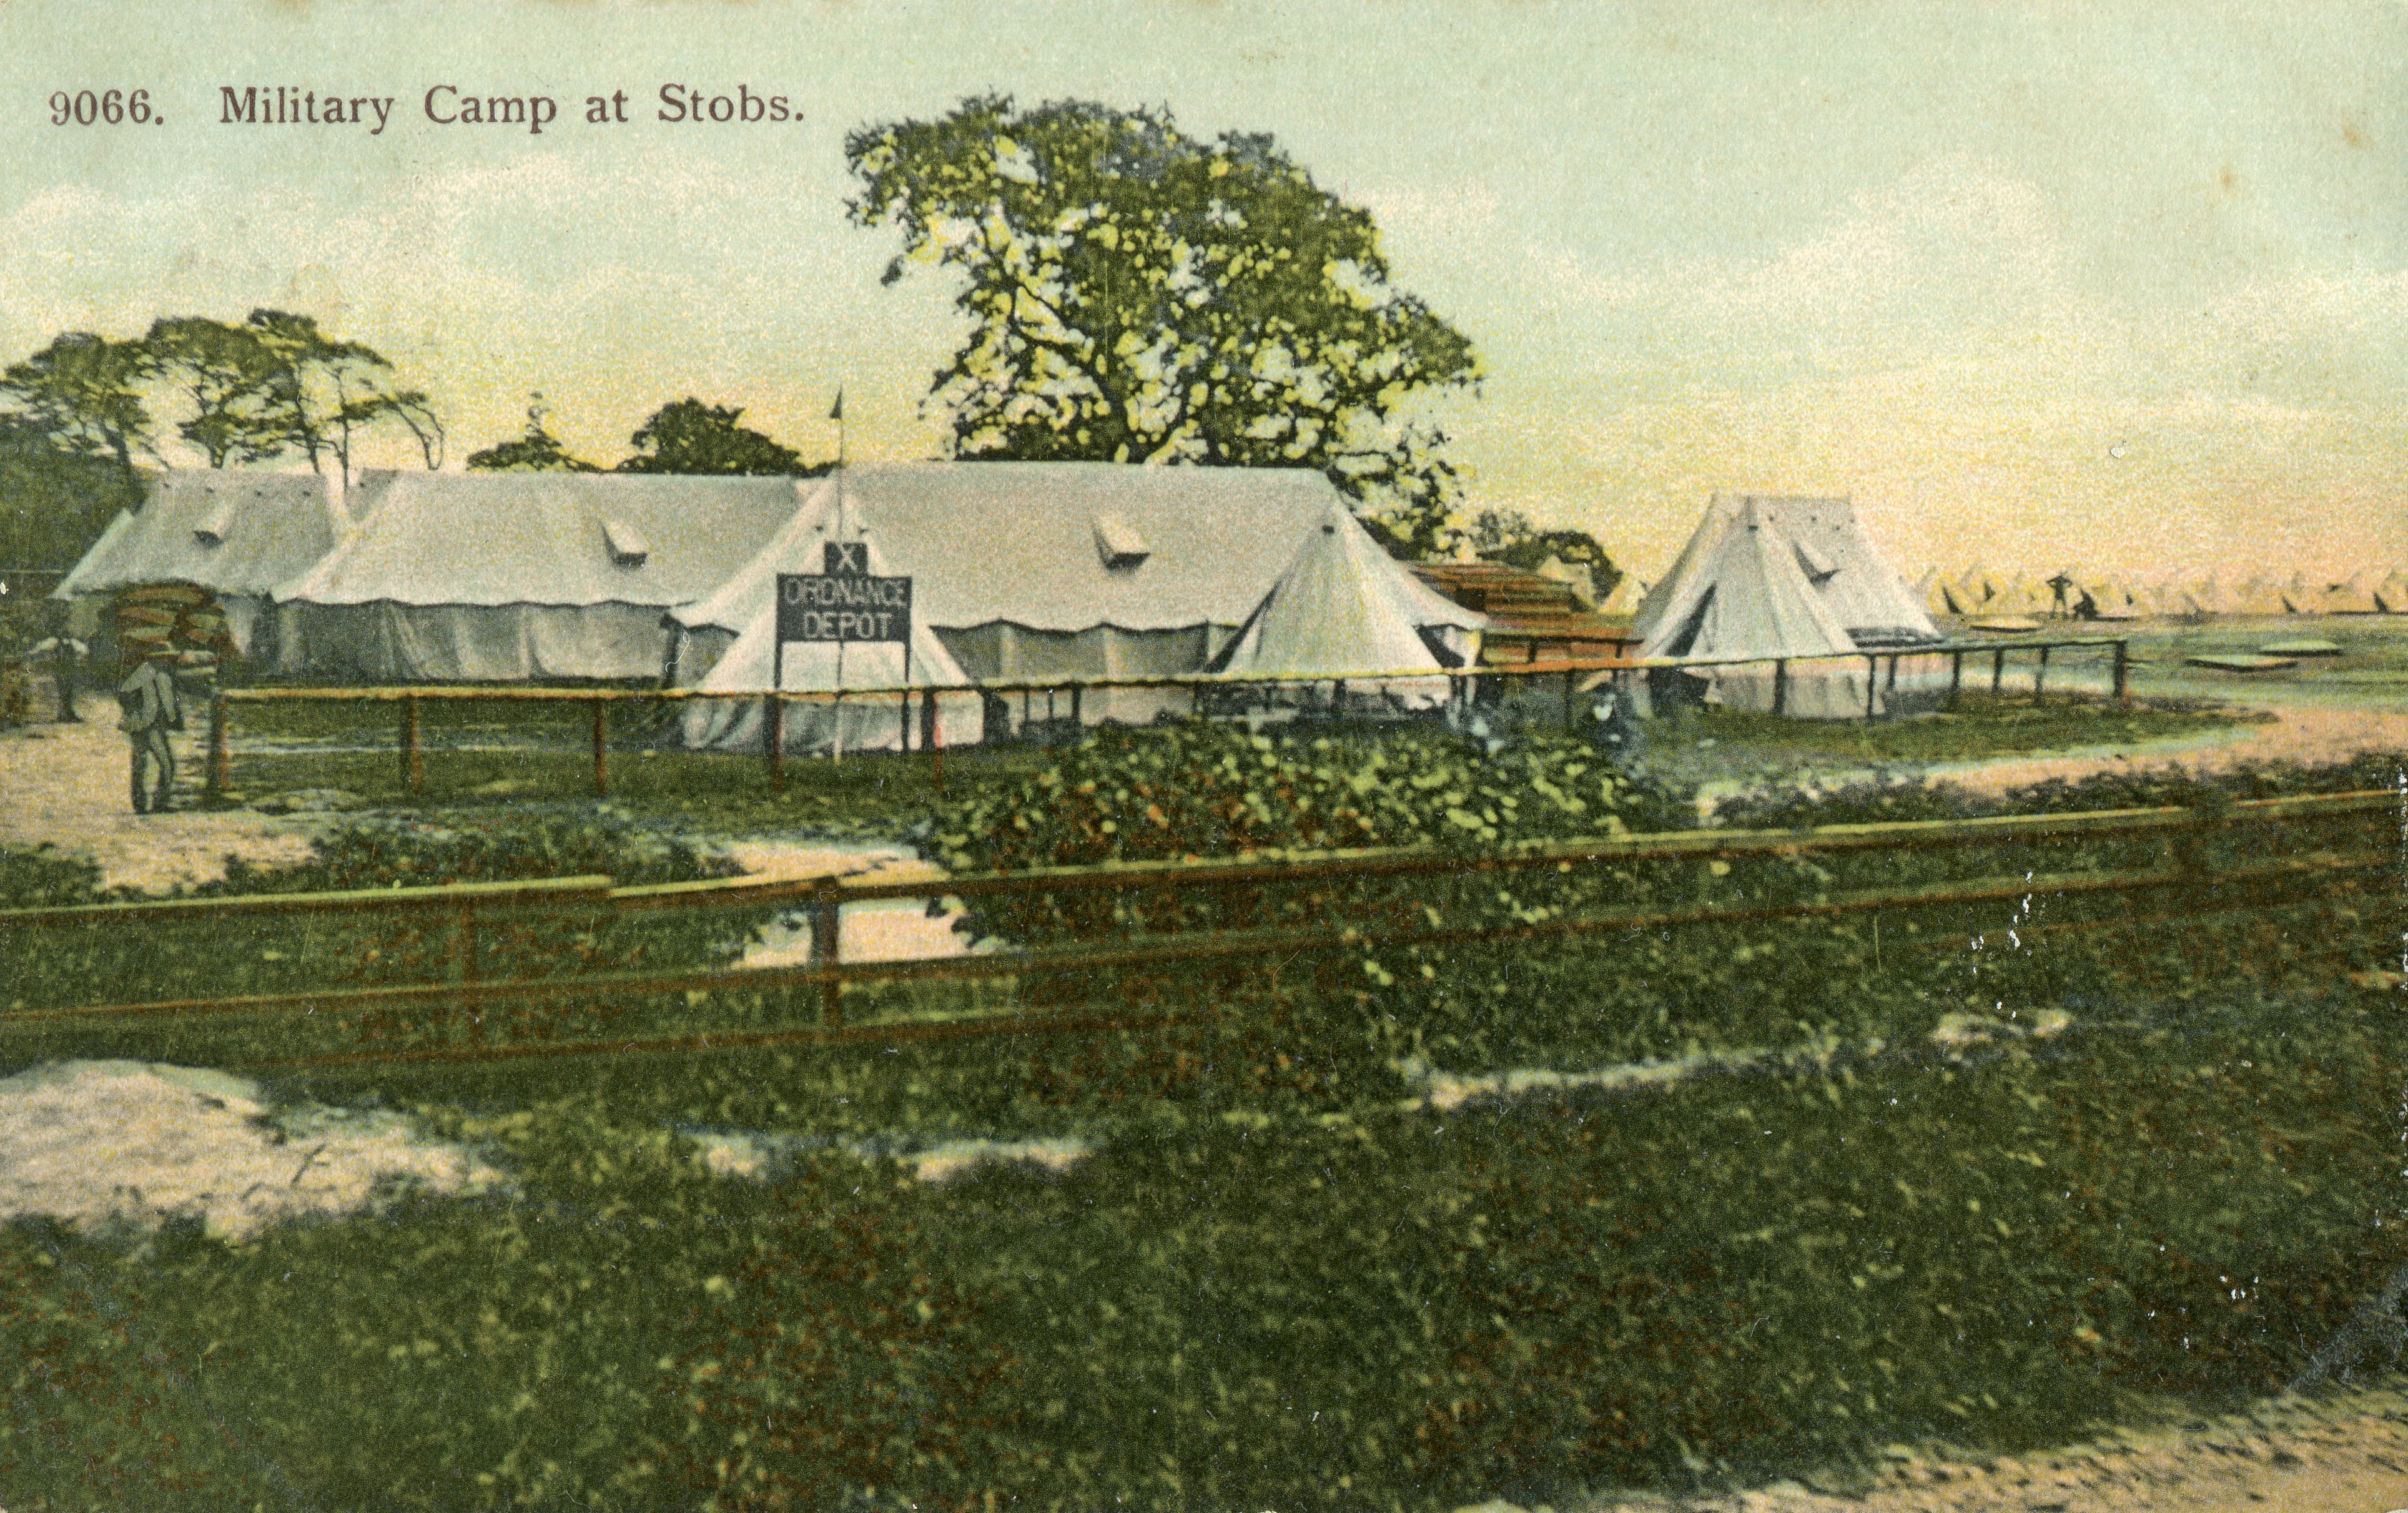 Ordnance Depot; Tent; Marquis; Stobs Camp; WW1; First World War; 1906